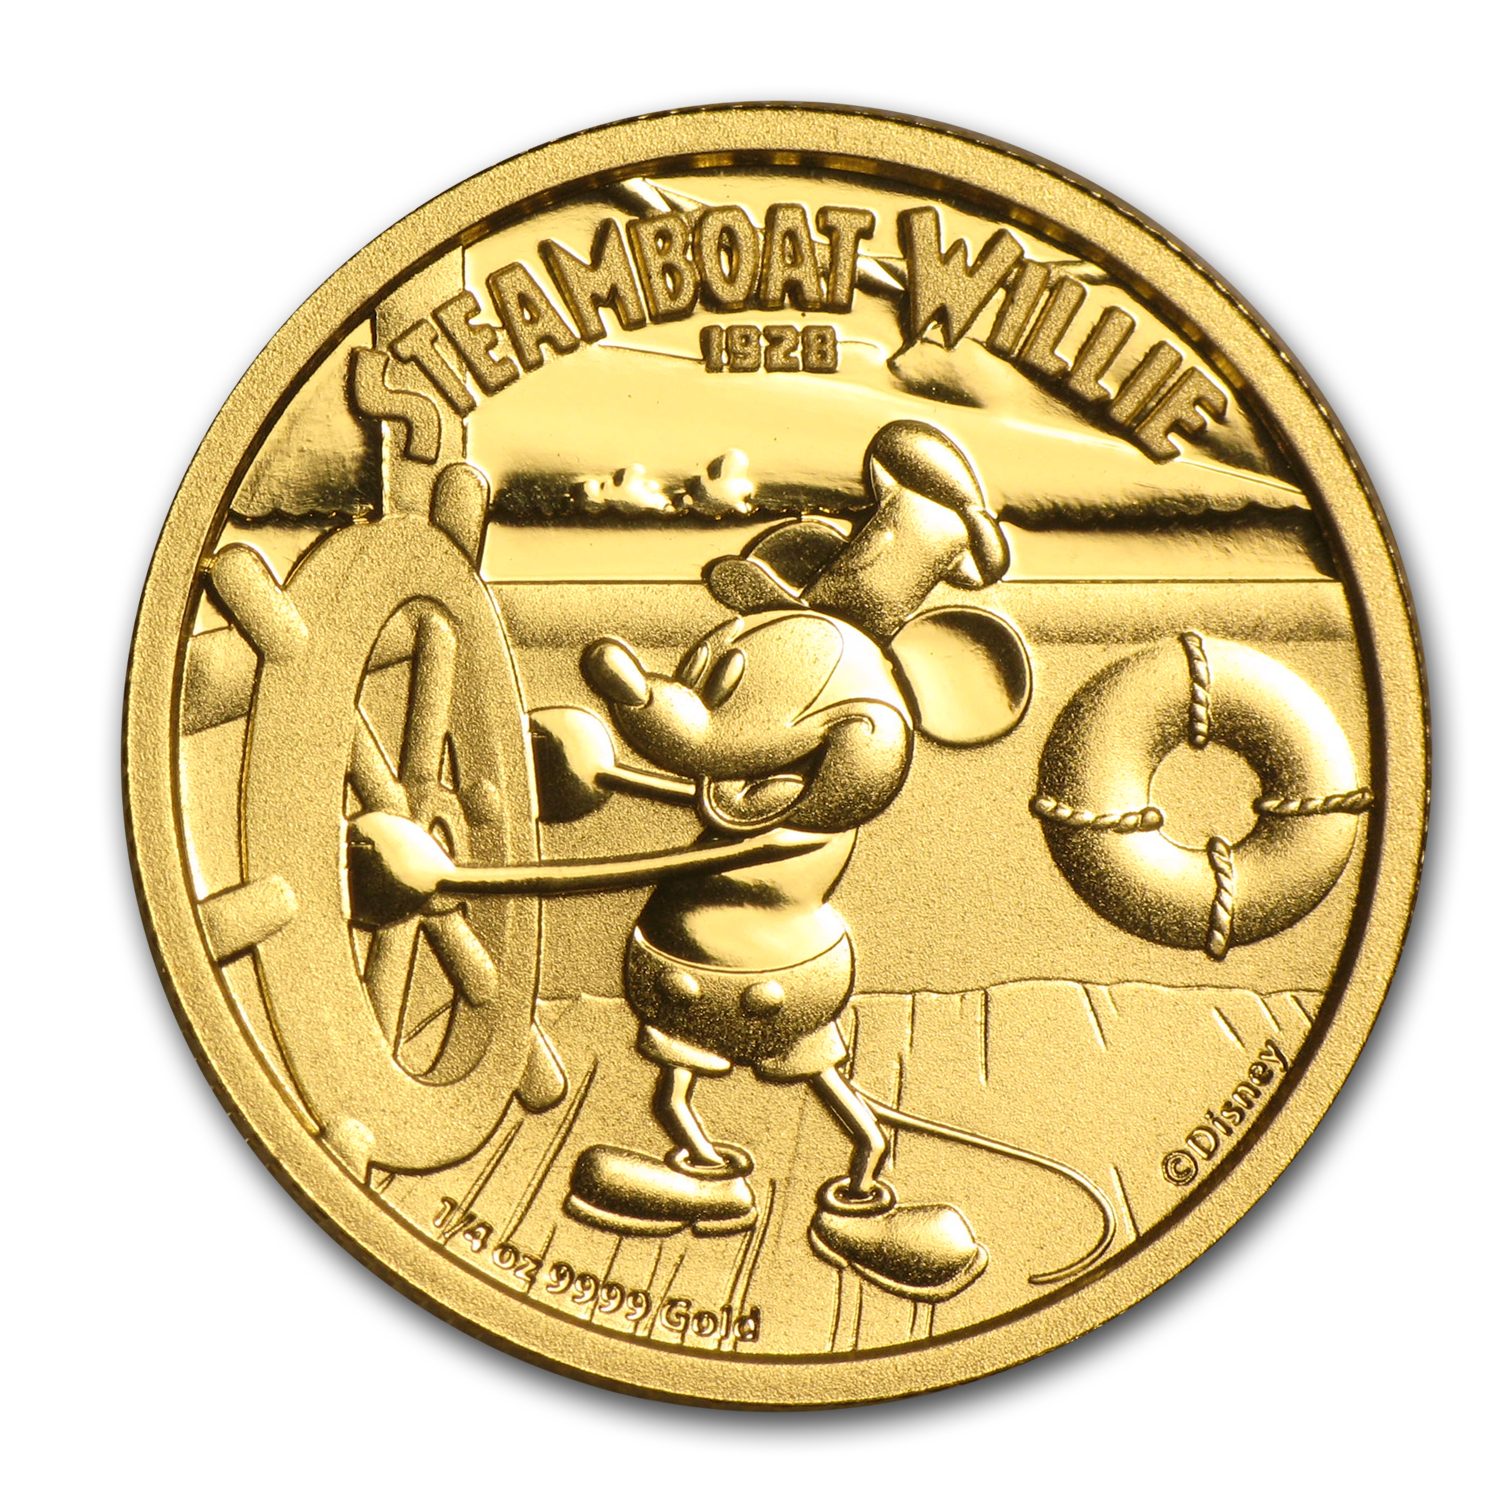 2014 Niue 1/4 oz Proof Gold $25 Disney Steamboat Willie